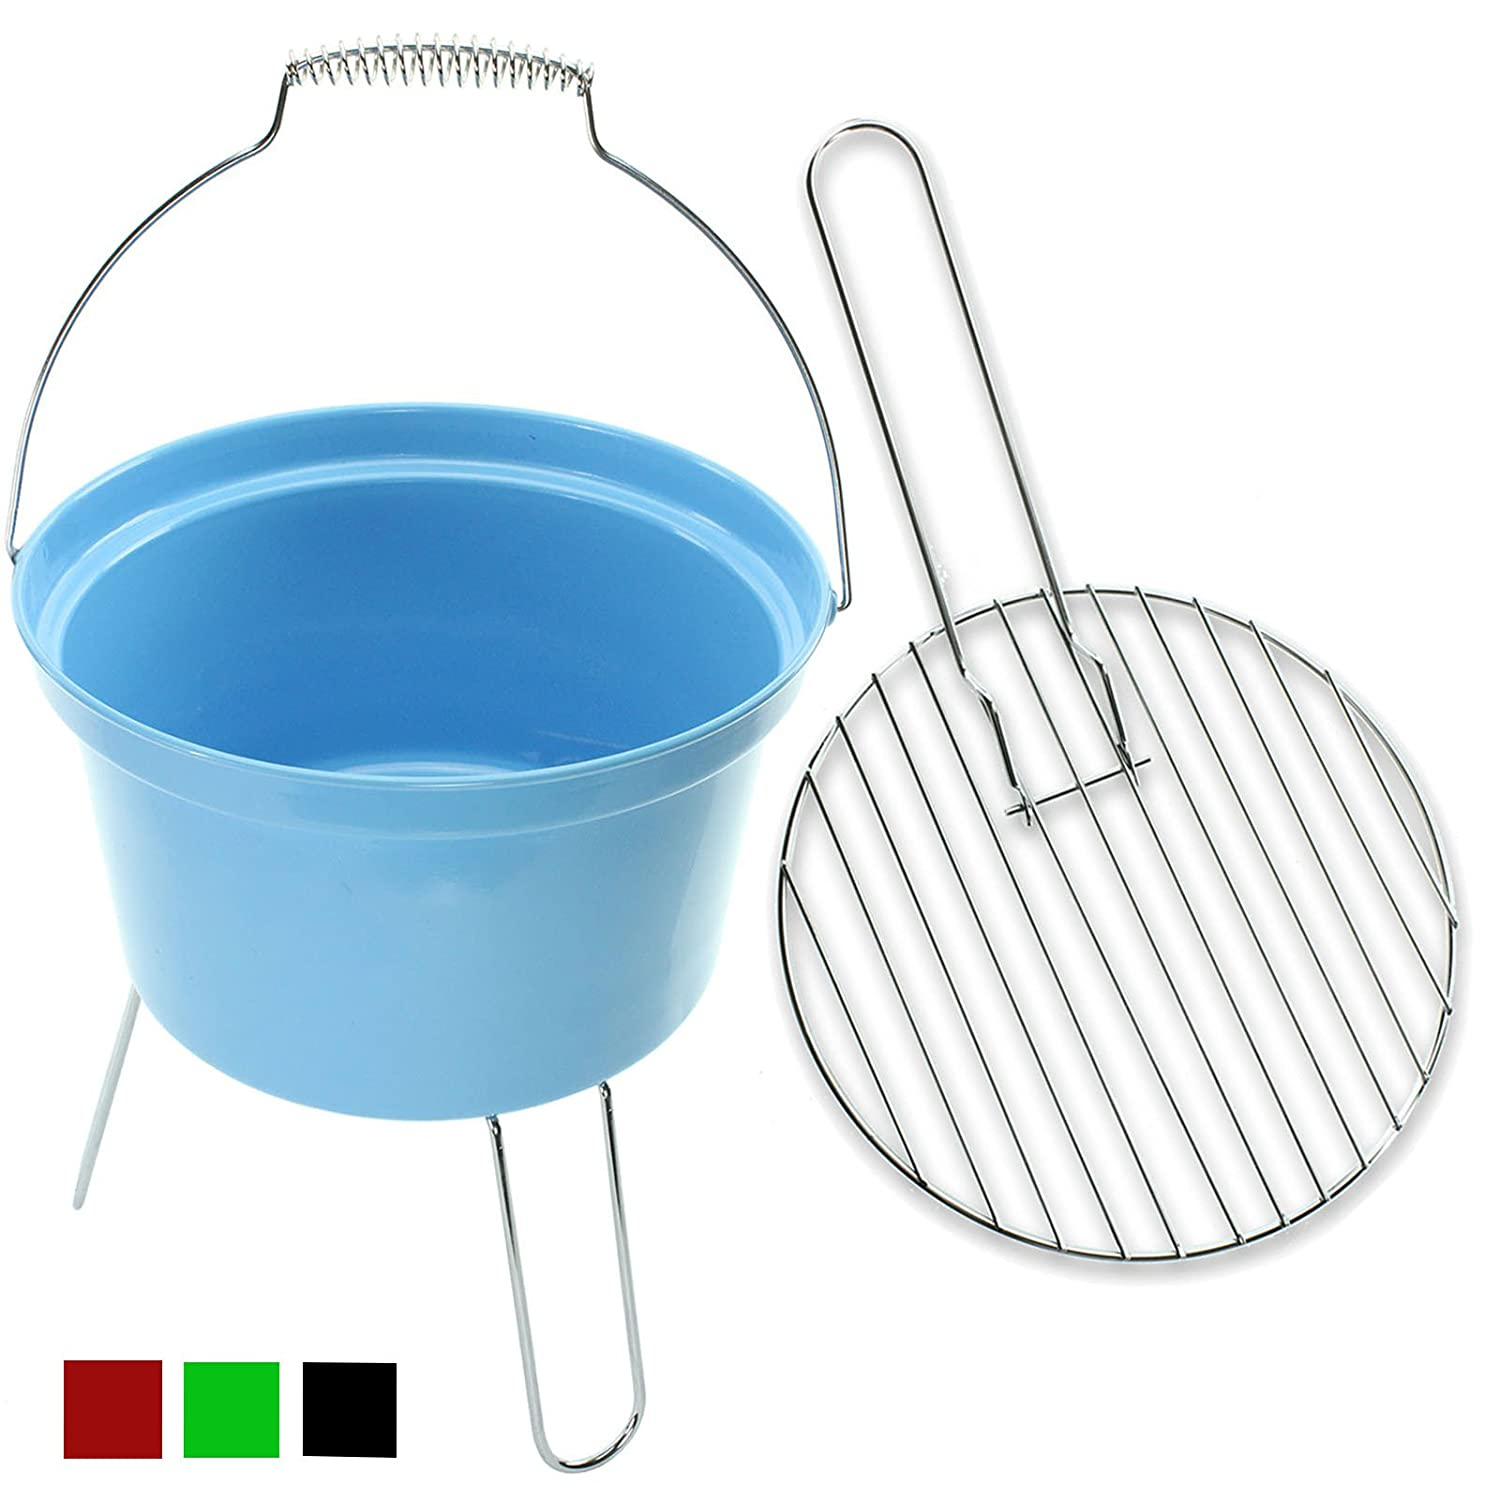 4YourHome Classic Lightweight Bucket BBQ with Handle and Stand – Ideal for Outdoors, Camping and Festivals (Black) First4spares